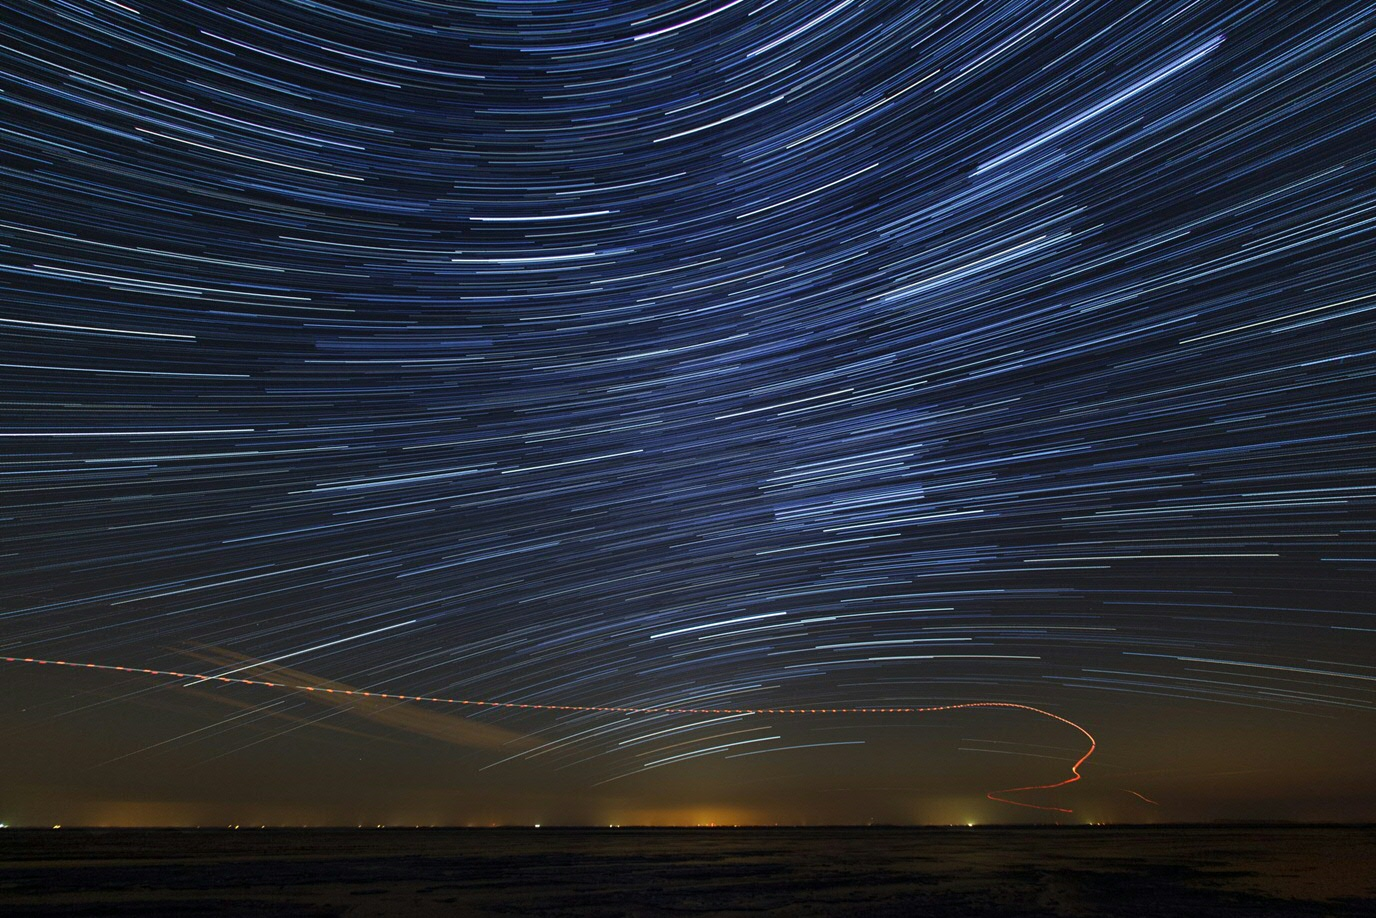 Ameland star trails and helicopter track (Photo by Johan van der Wielen)